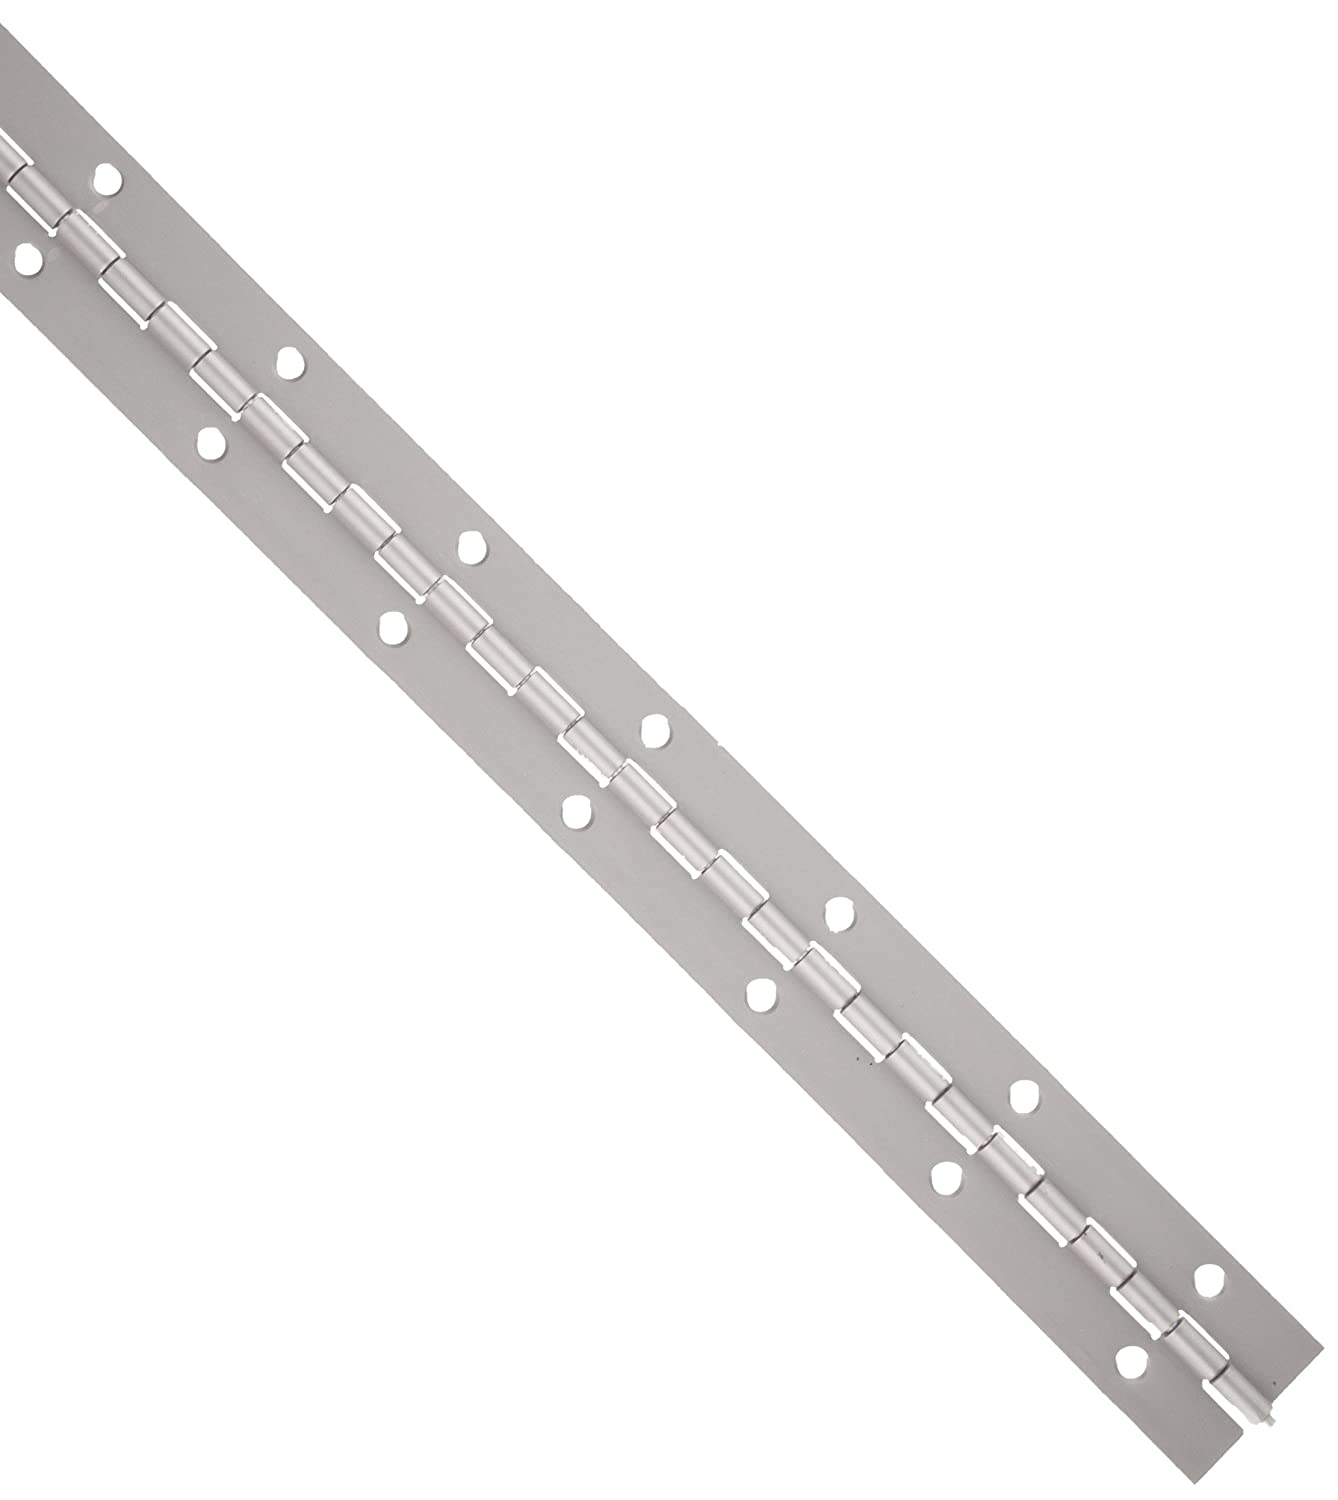 0.06 Leaf Thickness Clear Anodized Finish 1//2 Knuckle Length Pack of 1 3 Open Width Aluminum 3003 Continuous Hinge with Holes 1//8 Pin Diameter 3 Long